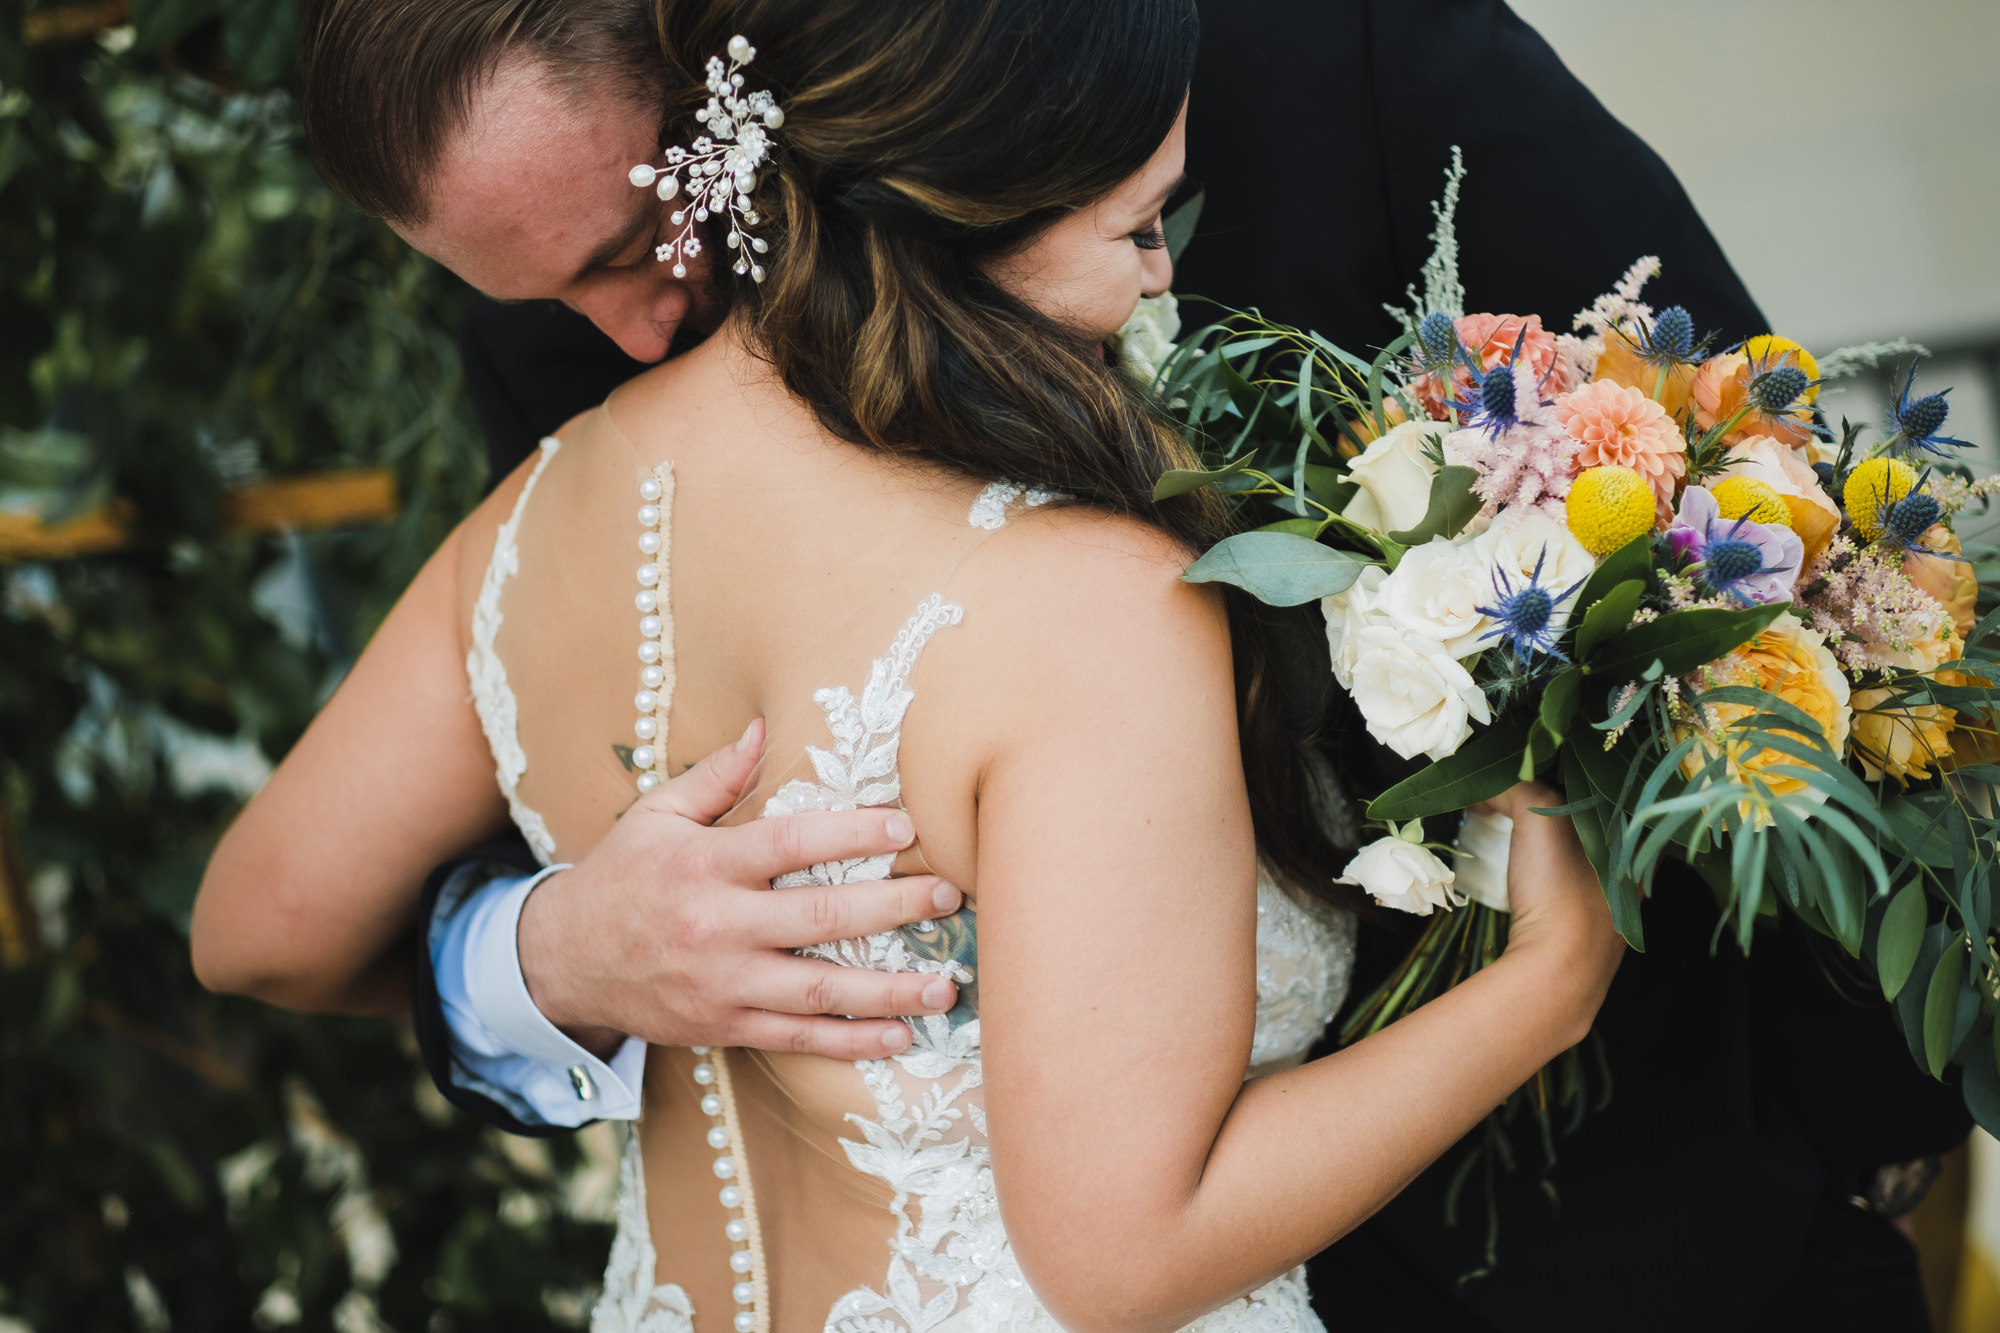 groom hugging his bride in sweet moment- photo by Chrisman Studios, charleston, restoration